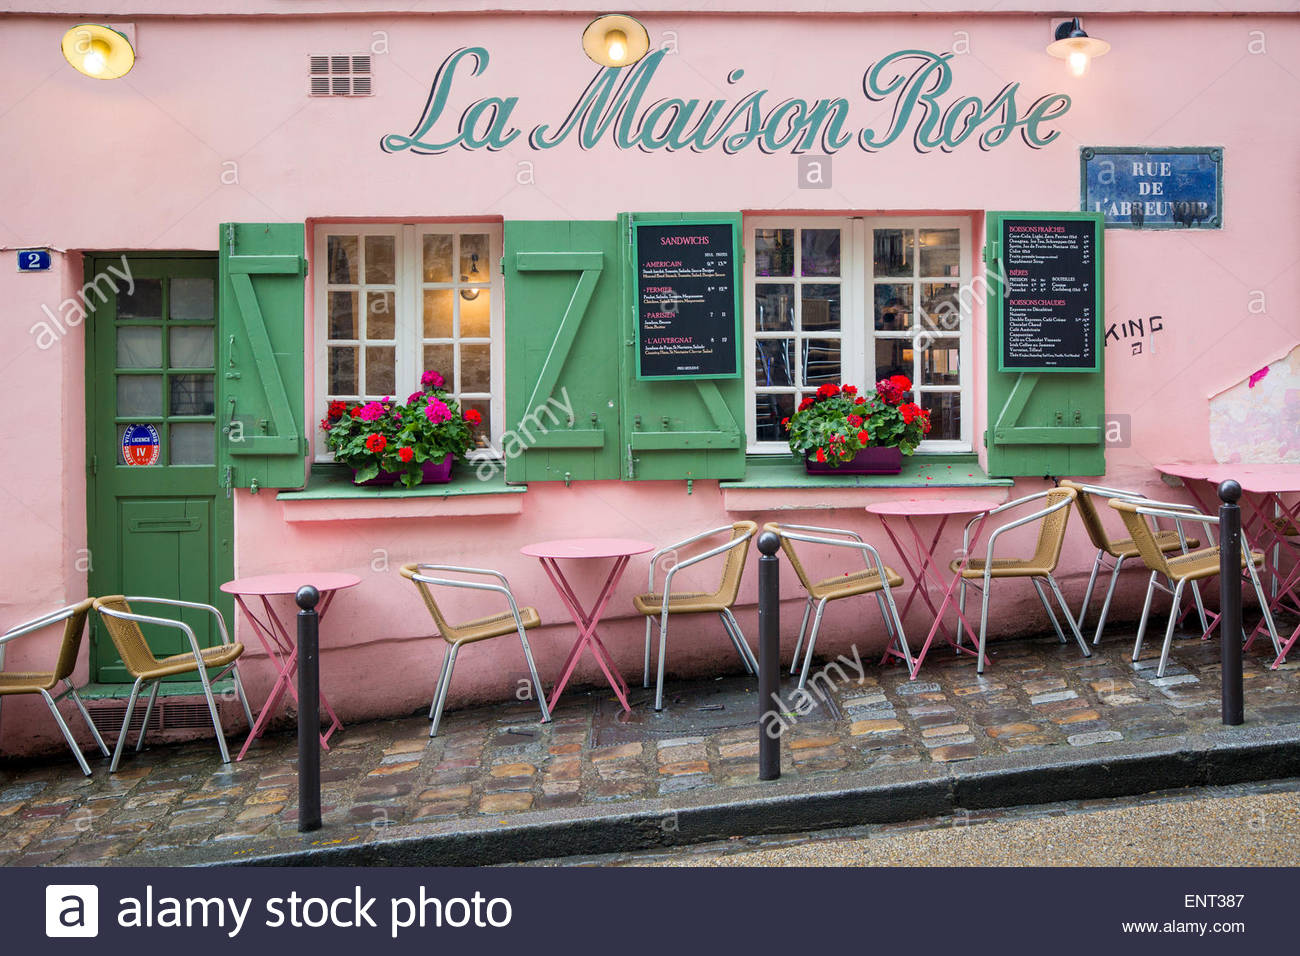 Cafe la maison rose montmartre paris france stock photo for La maison rose lourmarin